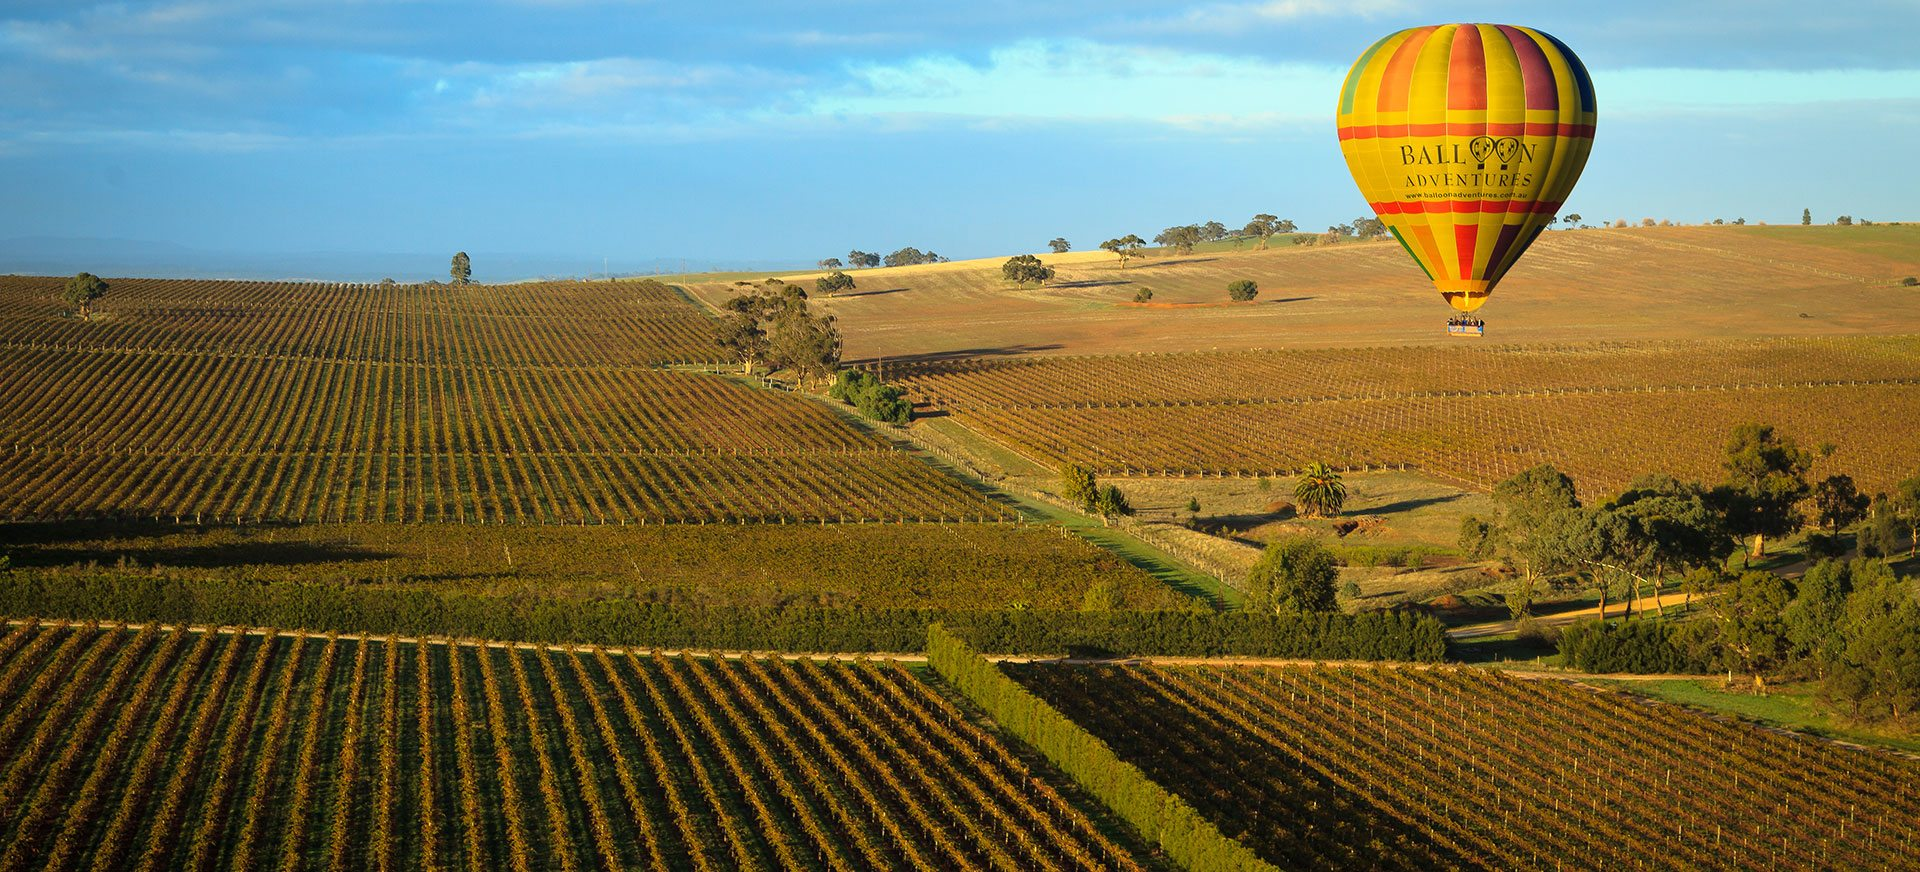 Balloon Adventures hot air balloon over the Barossa Valley